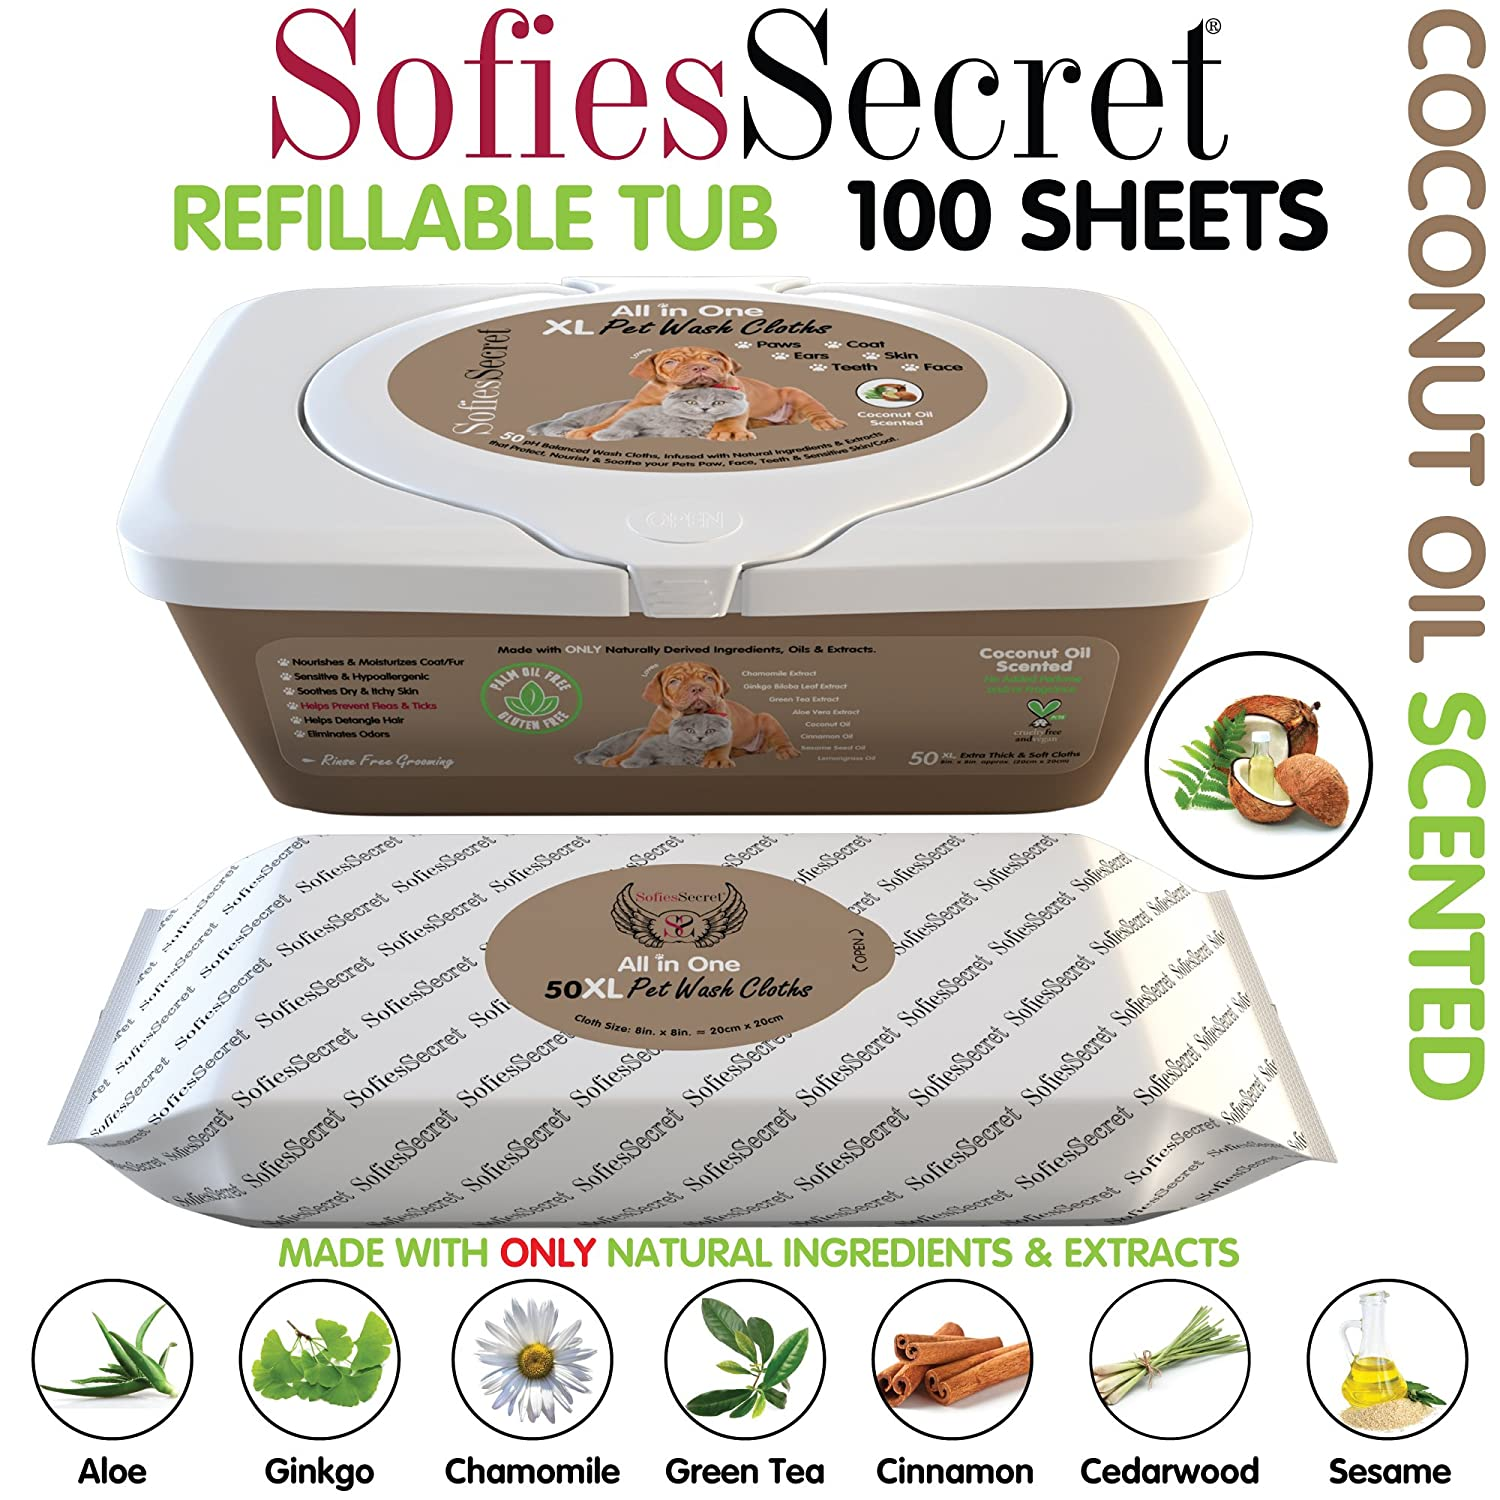 SofiesSecret XL PET WIPES, COCONUT SCENTED, All In One Grooming, for Paws, Coat, Skin, Face, Ears and Teeth, 100% Natural & Organic Extracts, Extra Thick, Extra Large Cruelty Free and Vegan Moist Towel Services